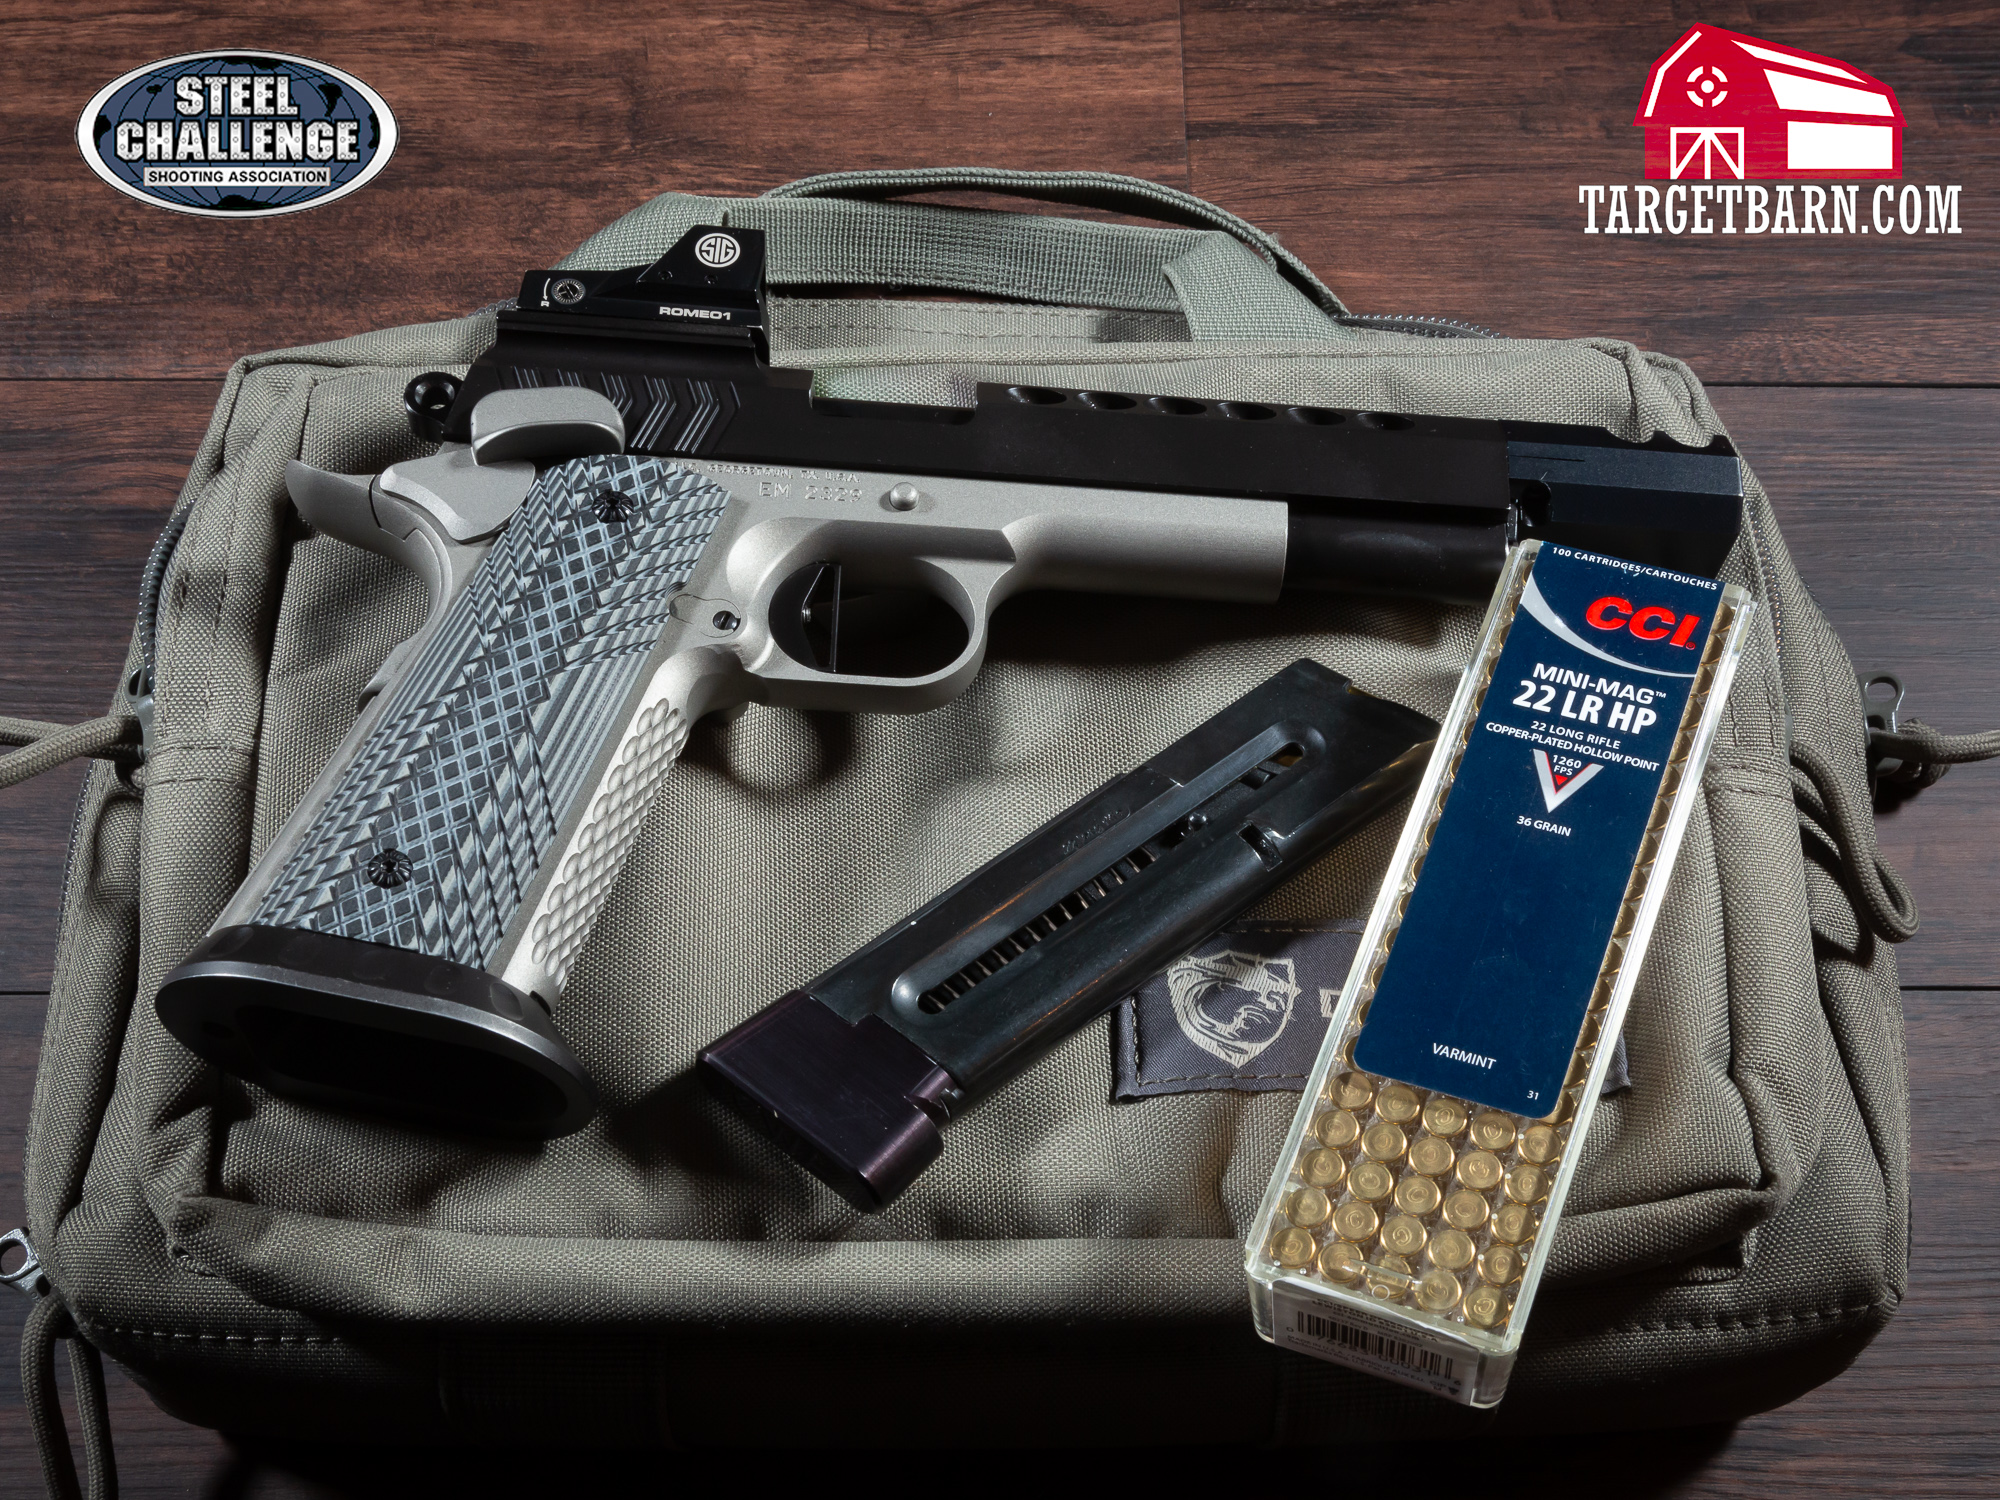 a rimfire pistol, magazine, and ammo for steel challenge